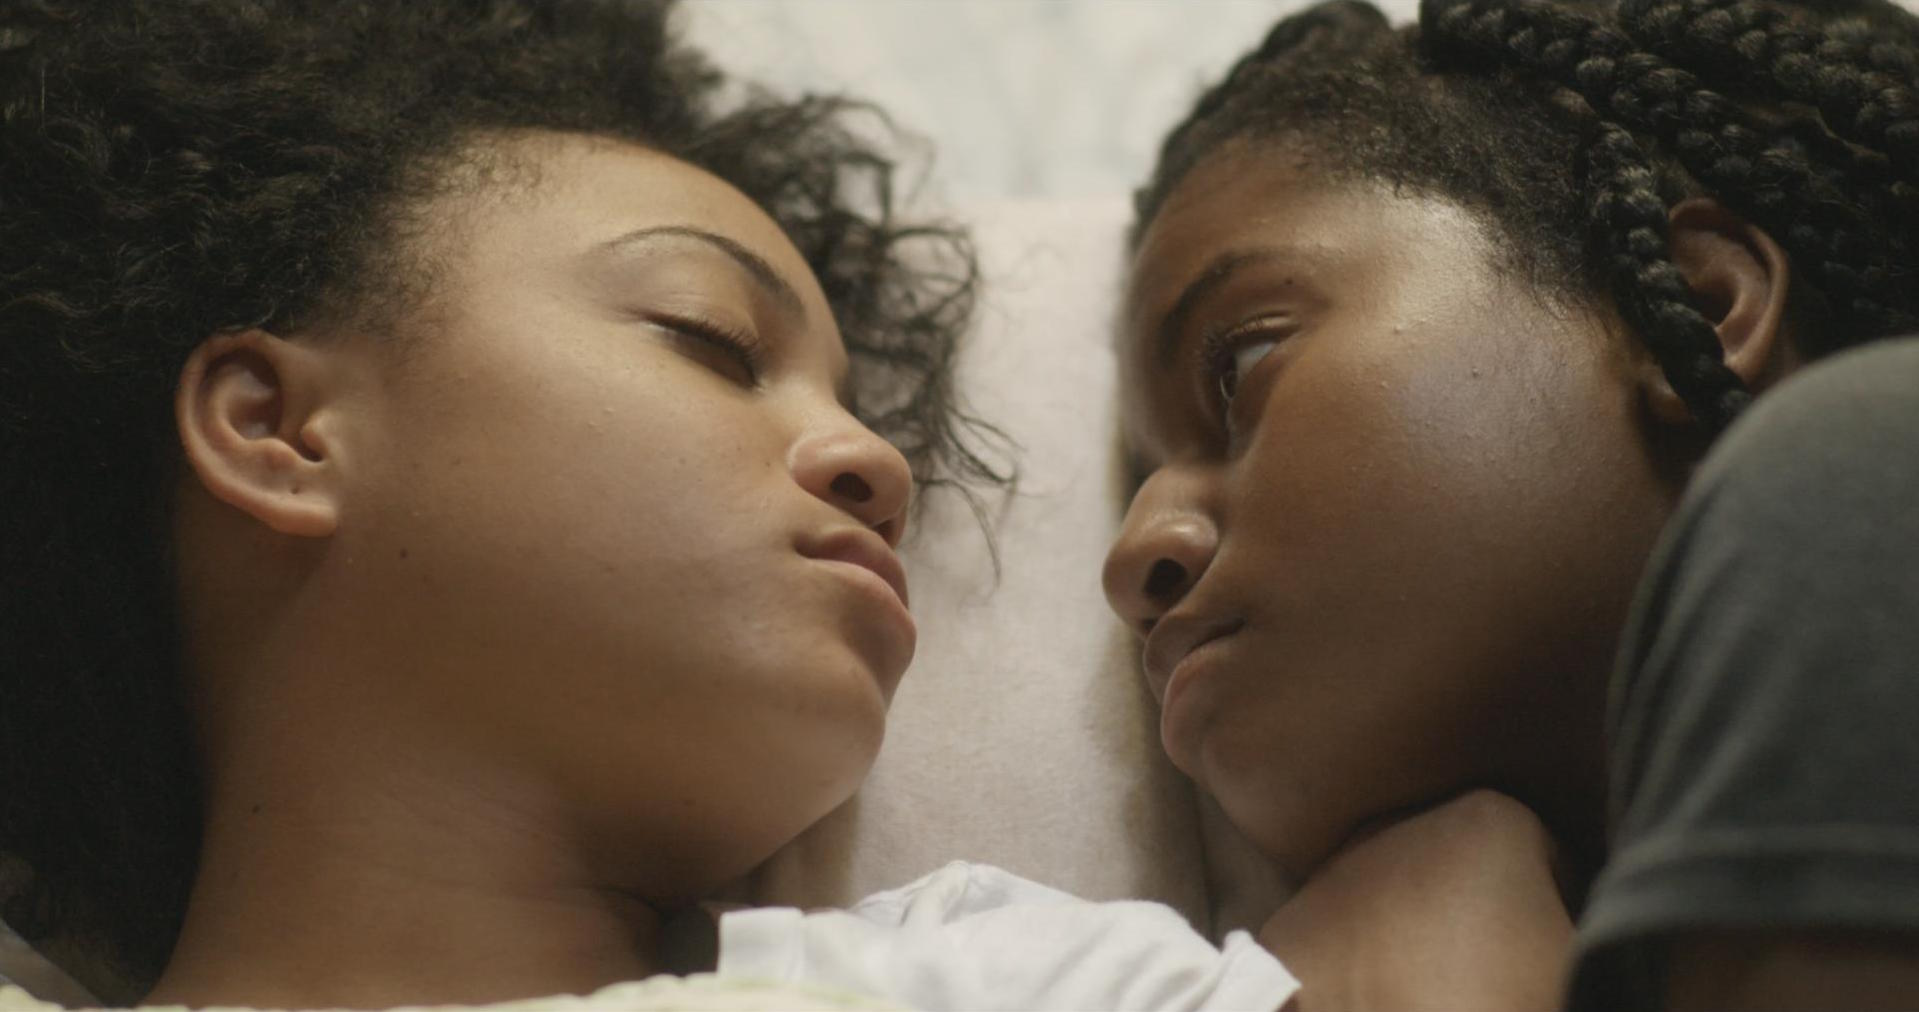 Cross My Heart - Sontenish MyersSynopsis: An American teenage girl visits her family in Jamaica and uncovers a secret that changes the way she sees the people she loves.RT: 13:322017, U.S. / Maine + New England Premiere